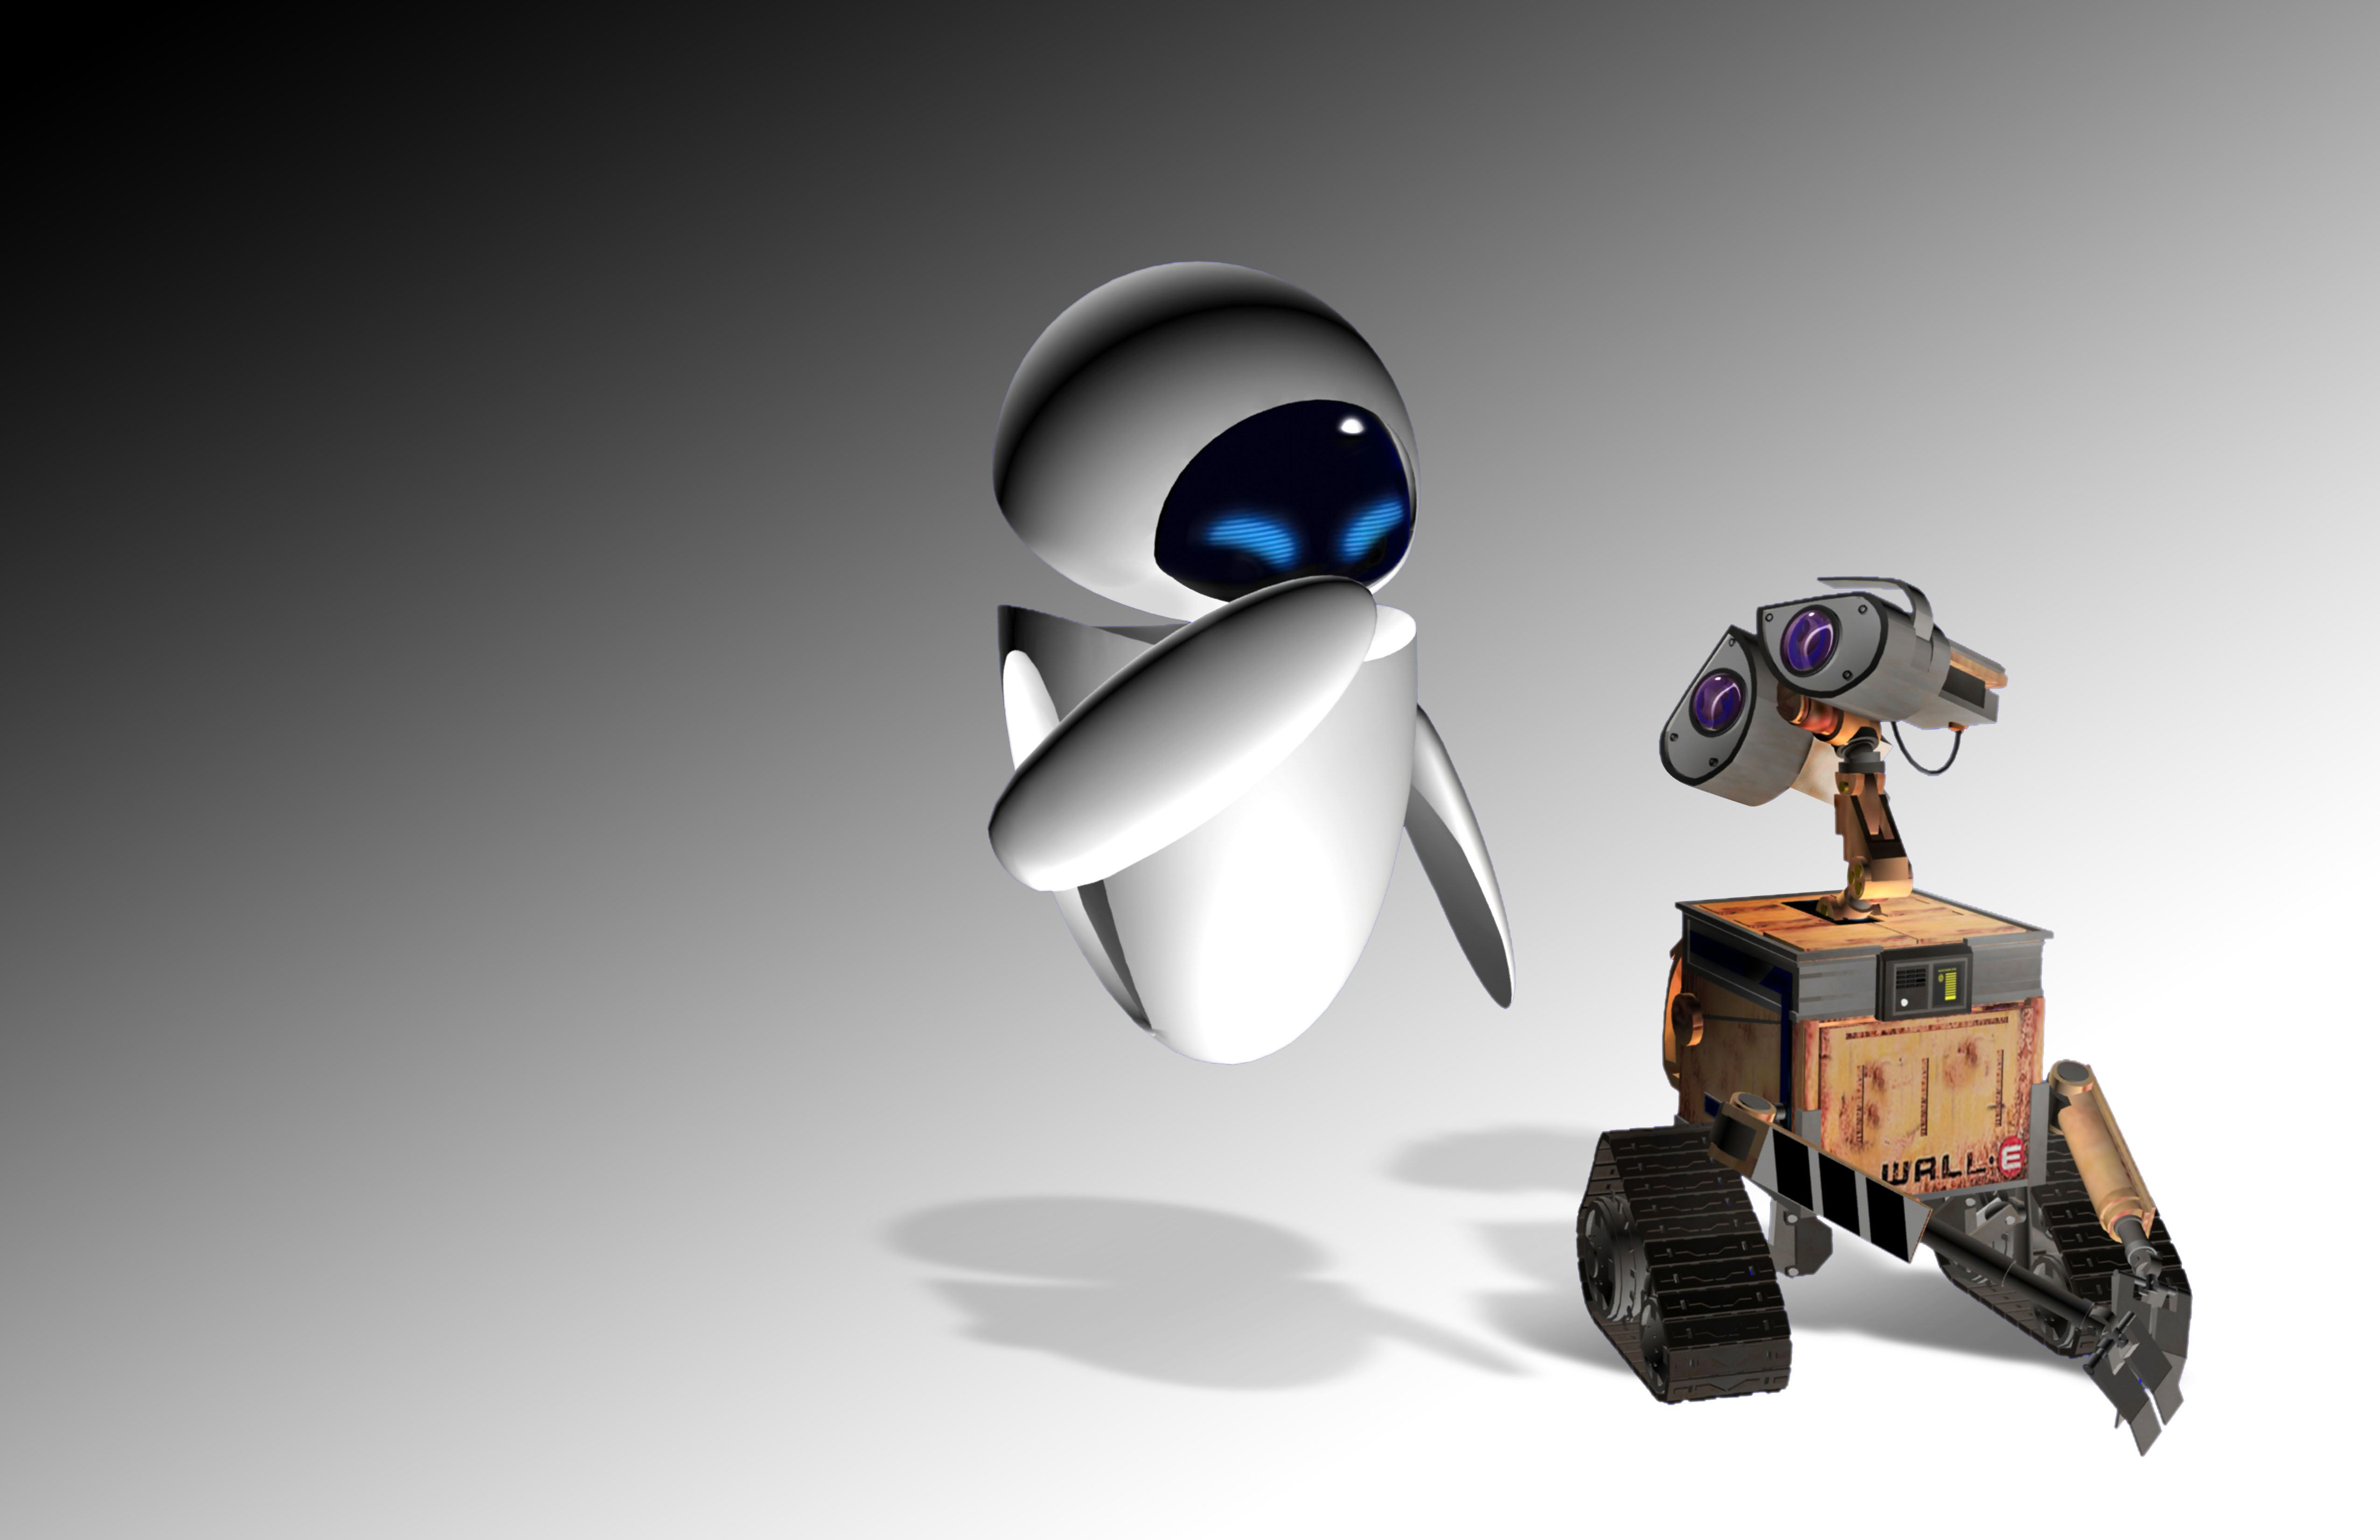 Walle Hd Wallpaper Posted By Zoey Thompson